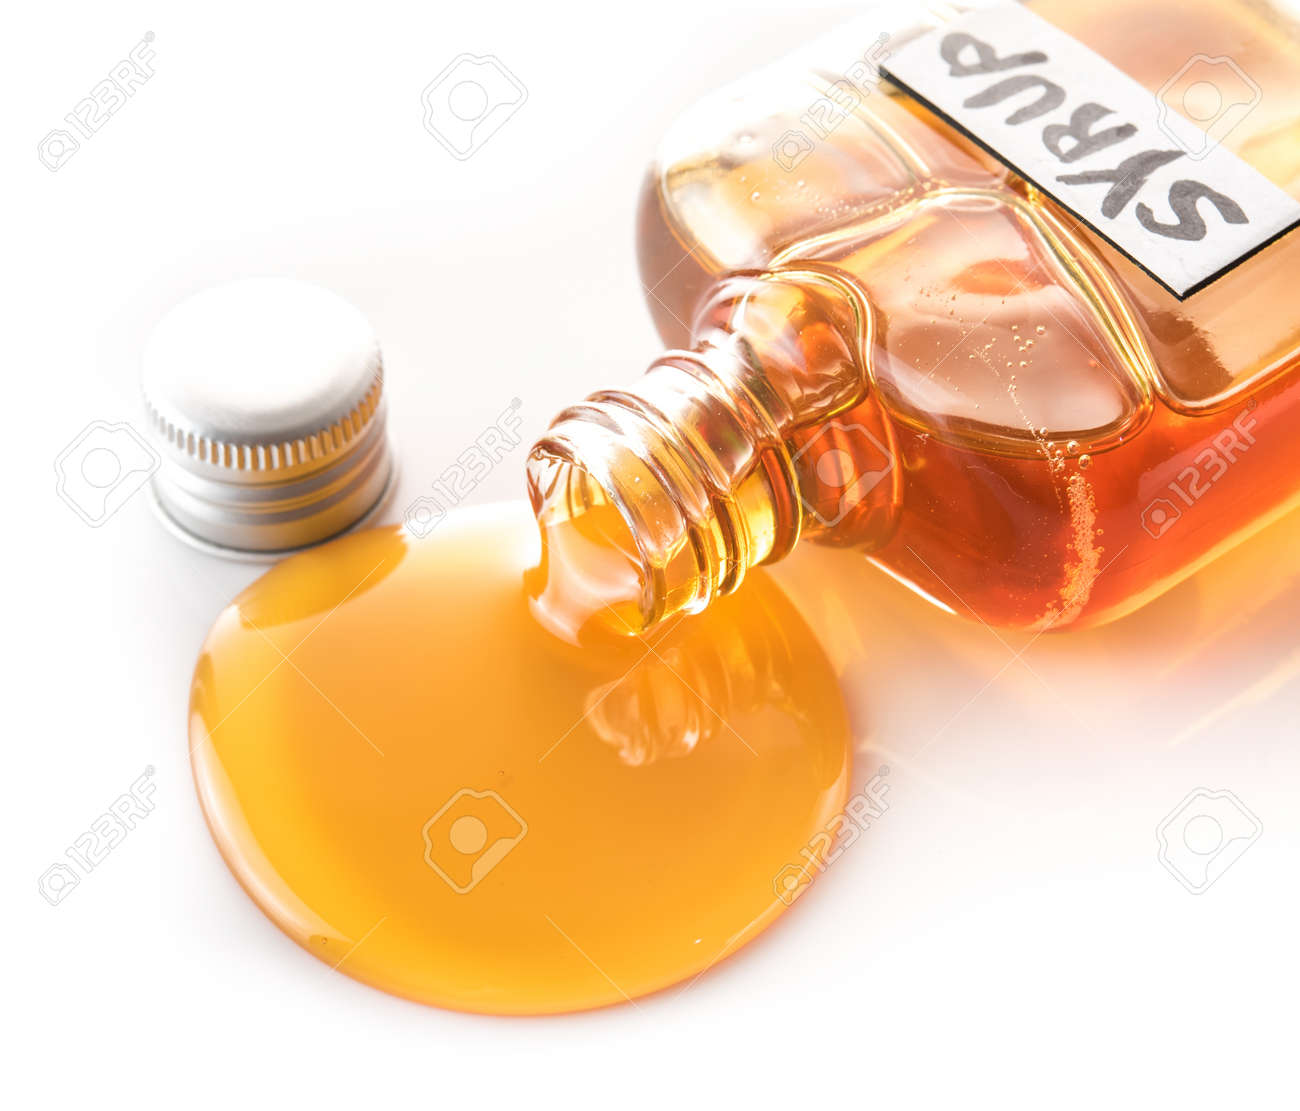 a51ec0ae784 Maple syrup bottle pouring on white background Stock Photo - 100606507